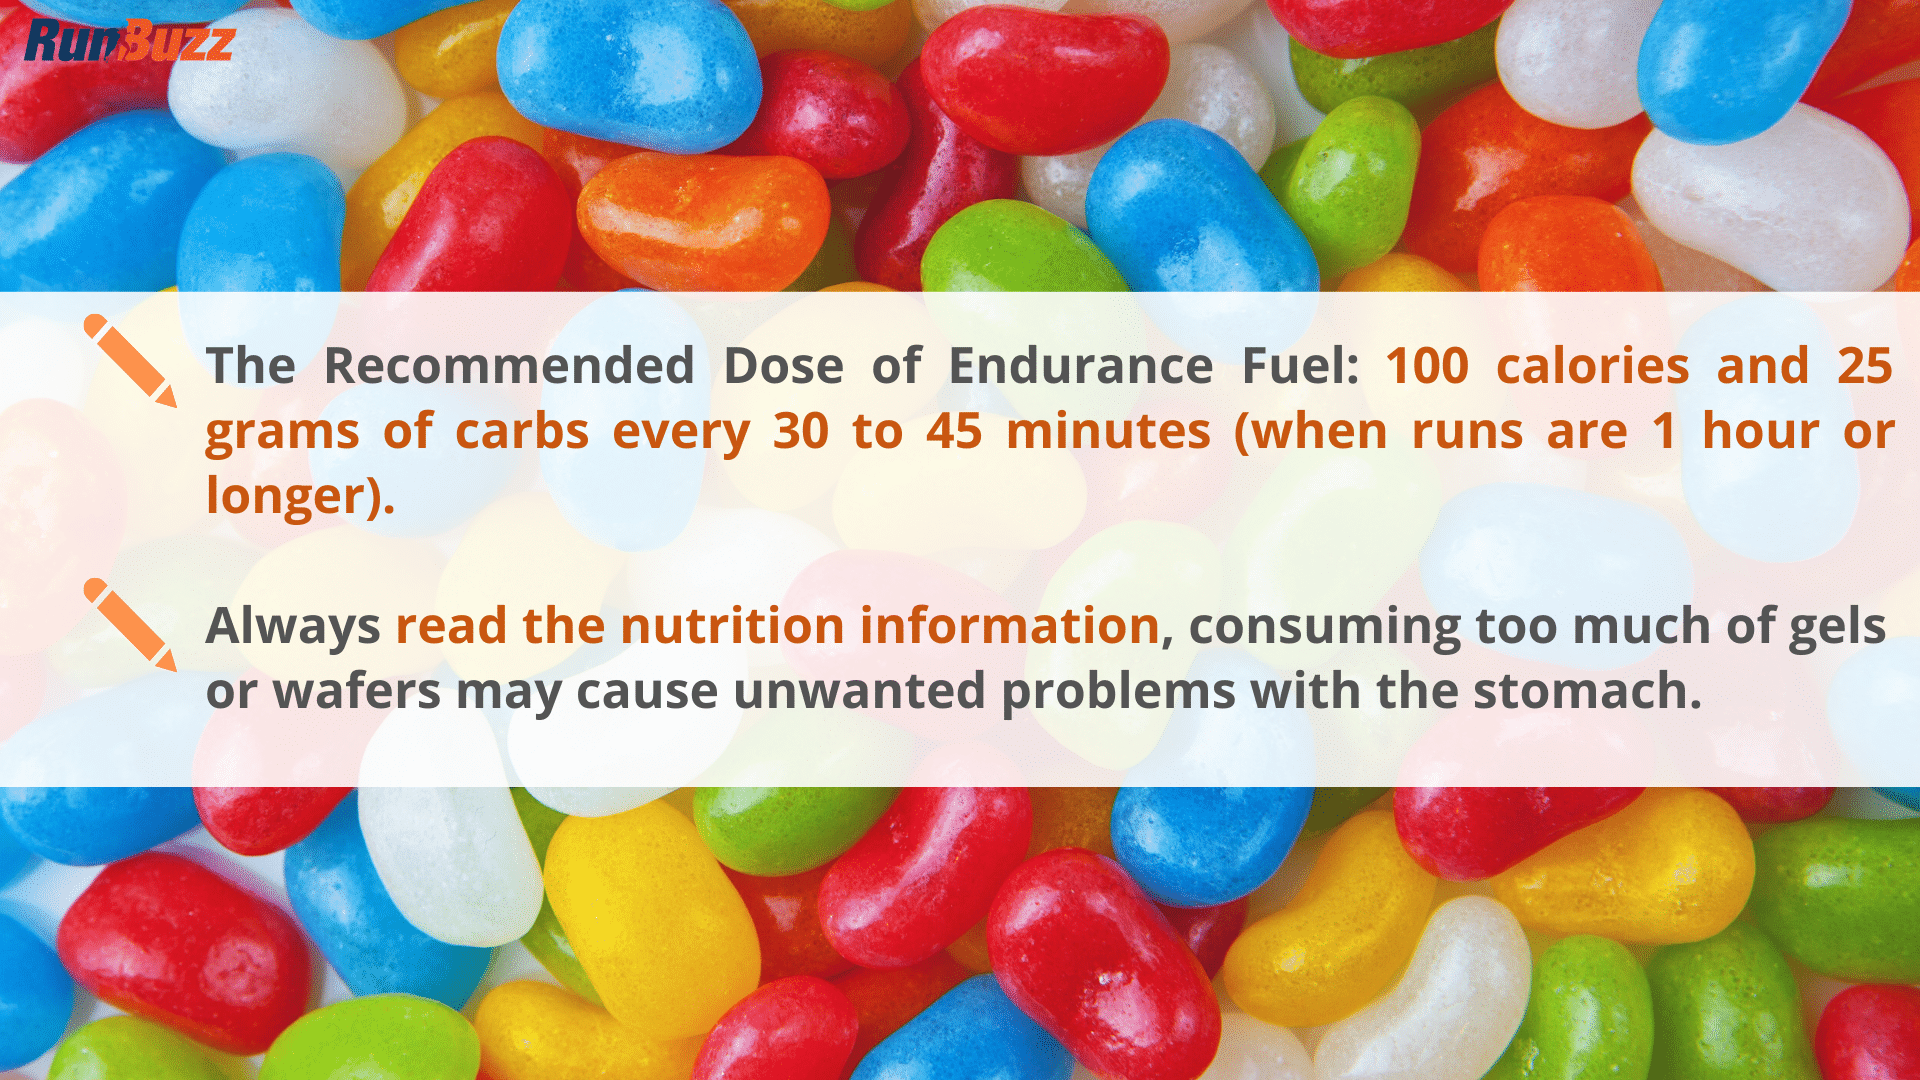 The-Recommended-Dose-of-Endurance-Fuel